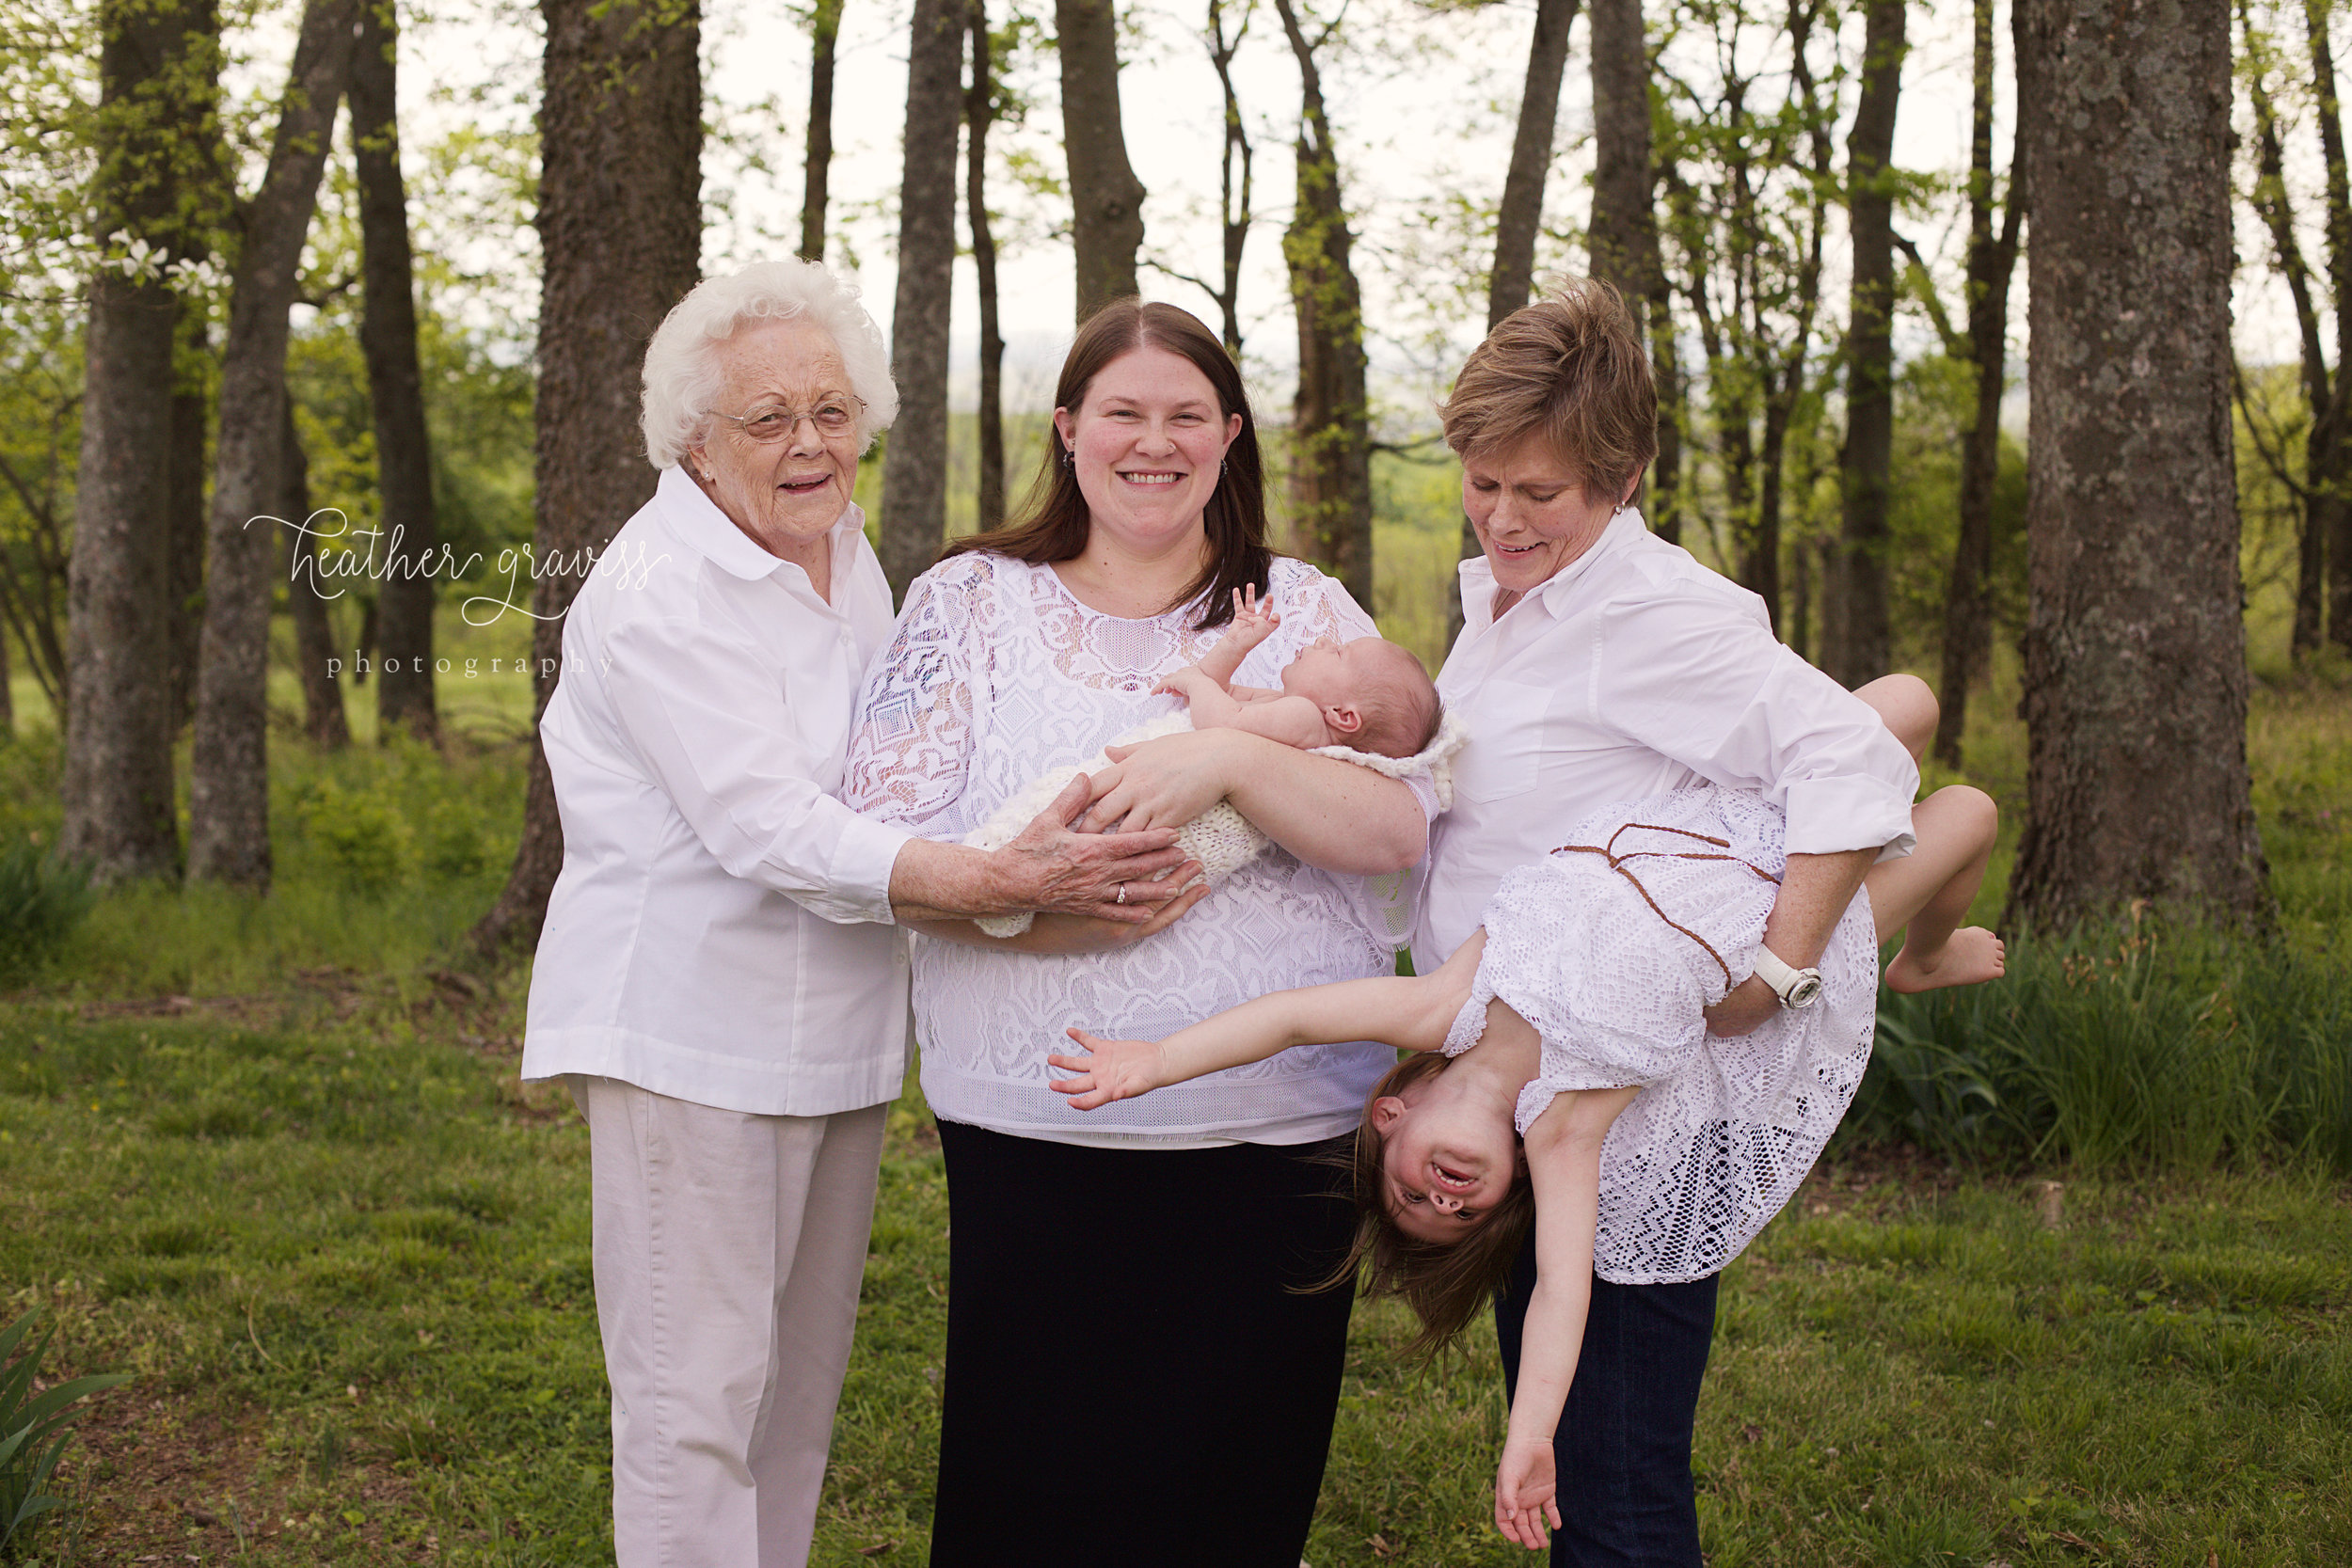 nashville middle tn family photography13.jpg